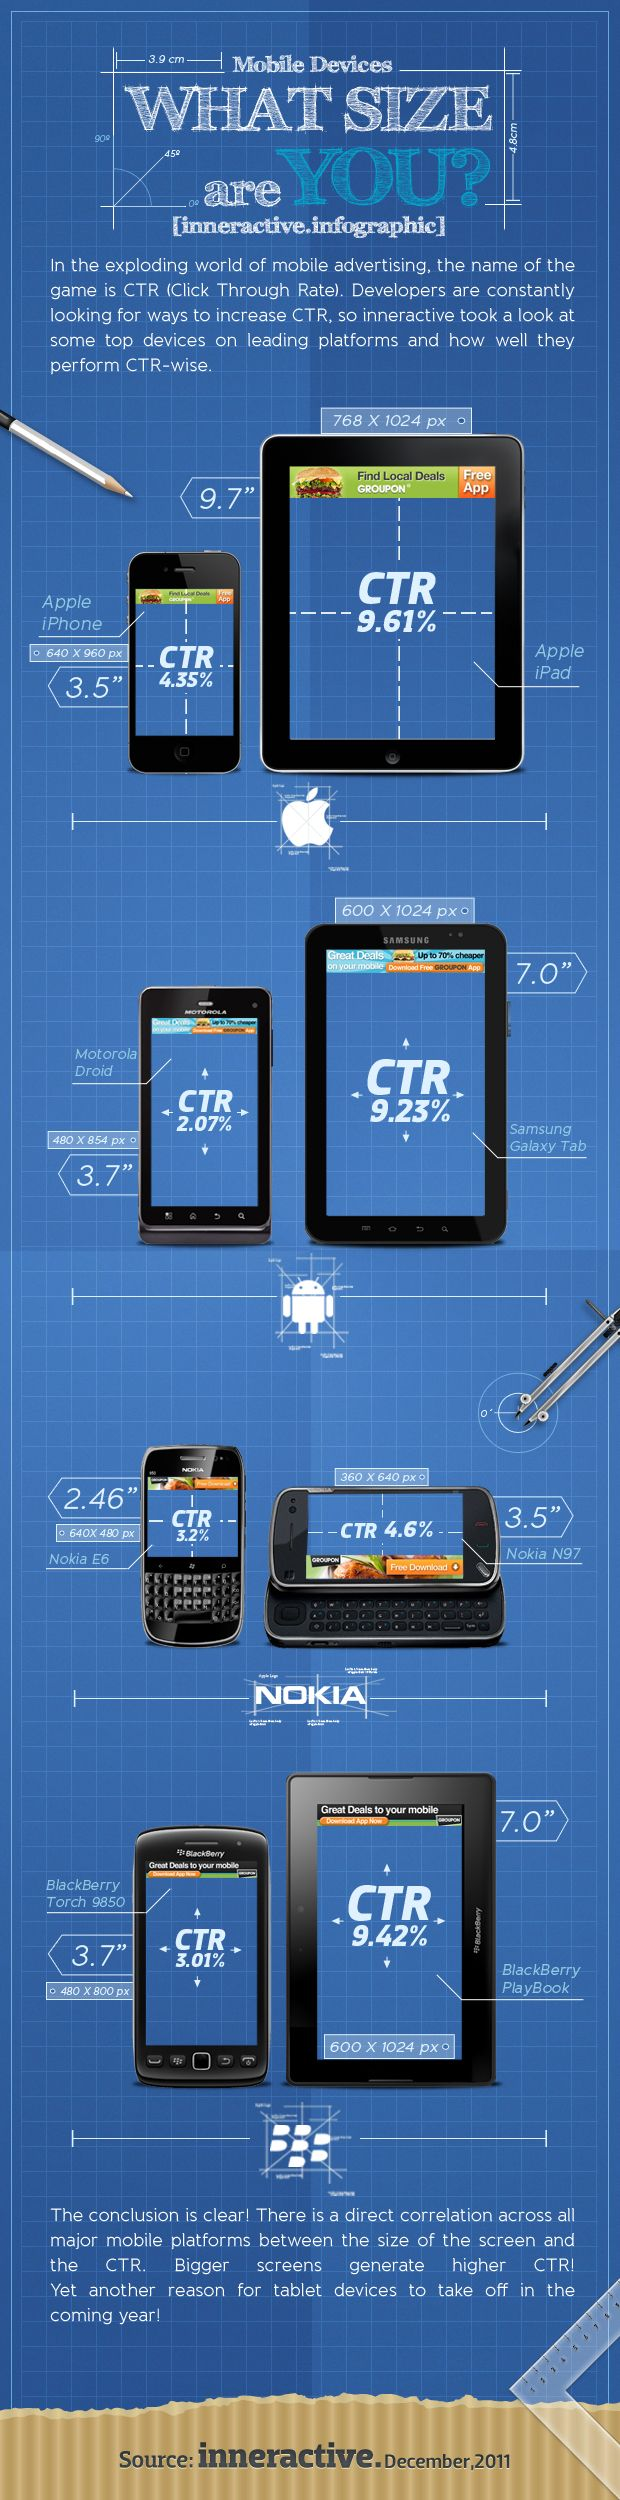 Mobile Devices - What Size Are You?